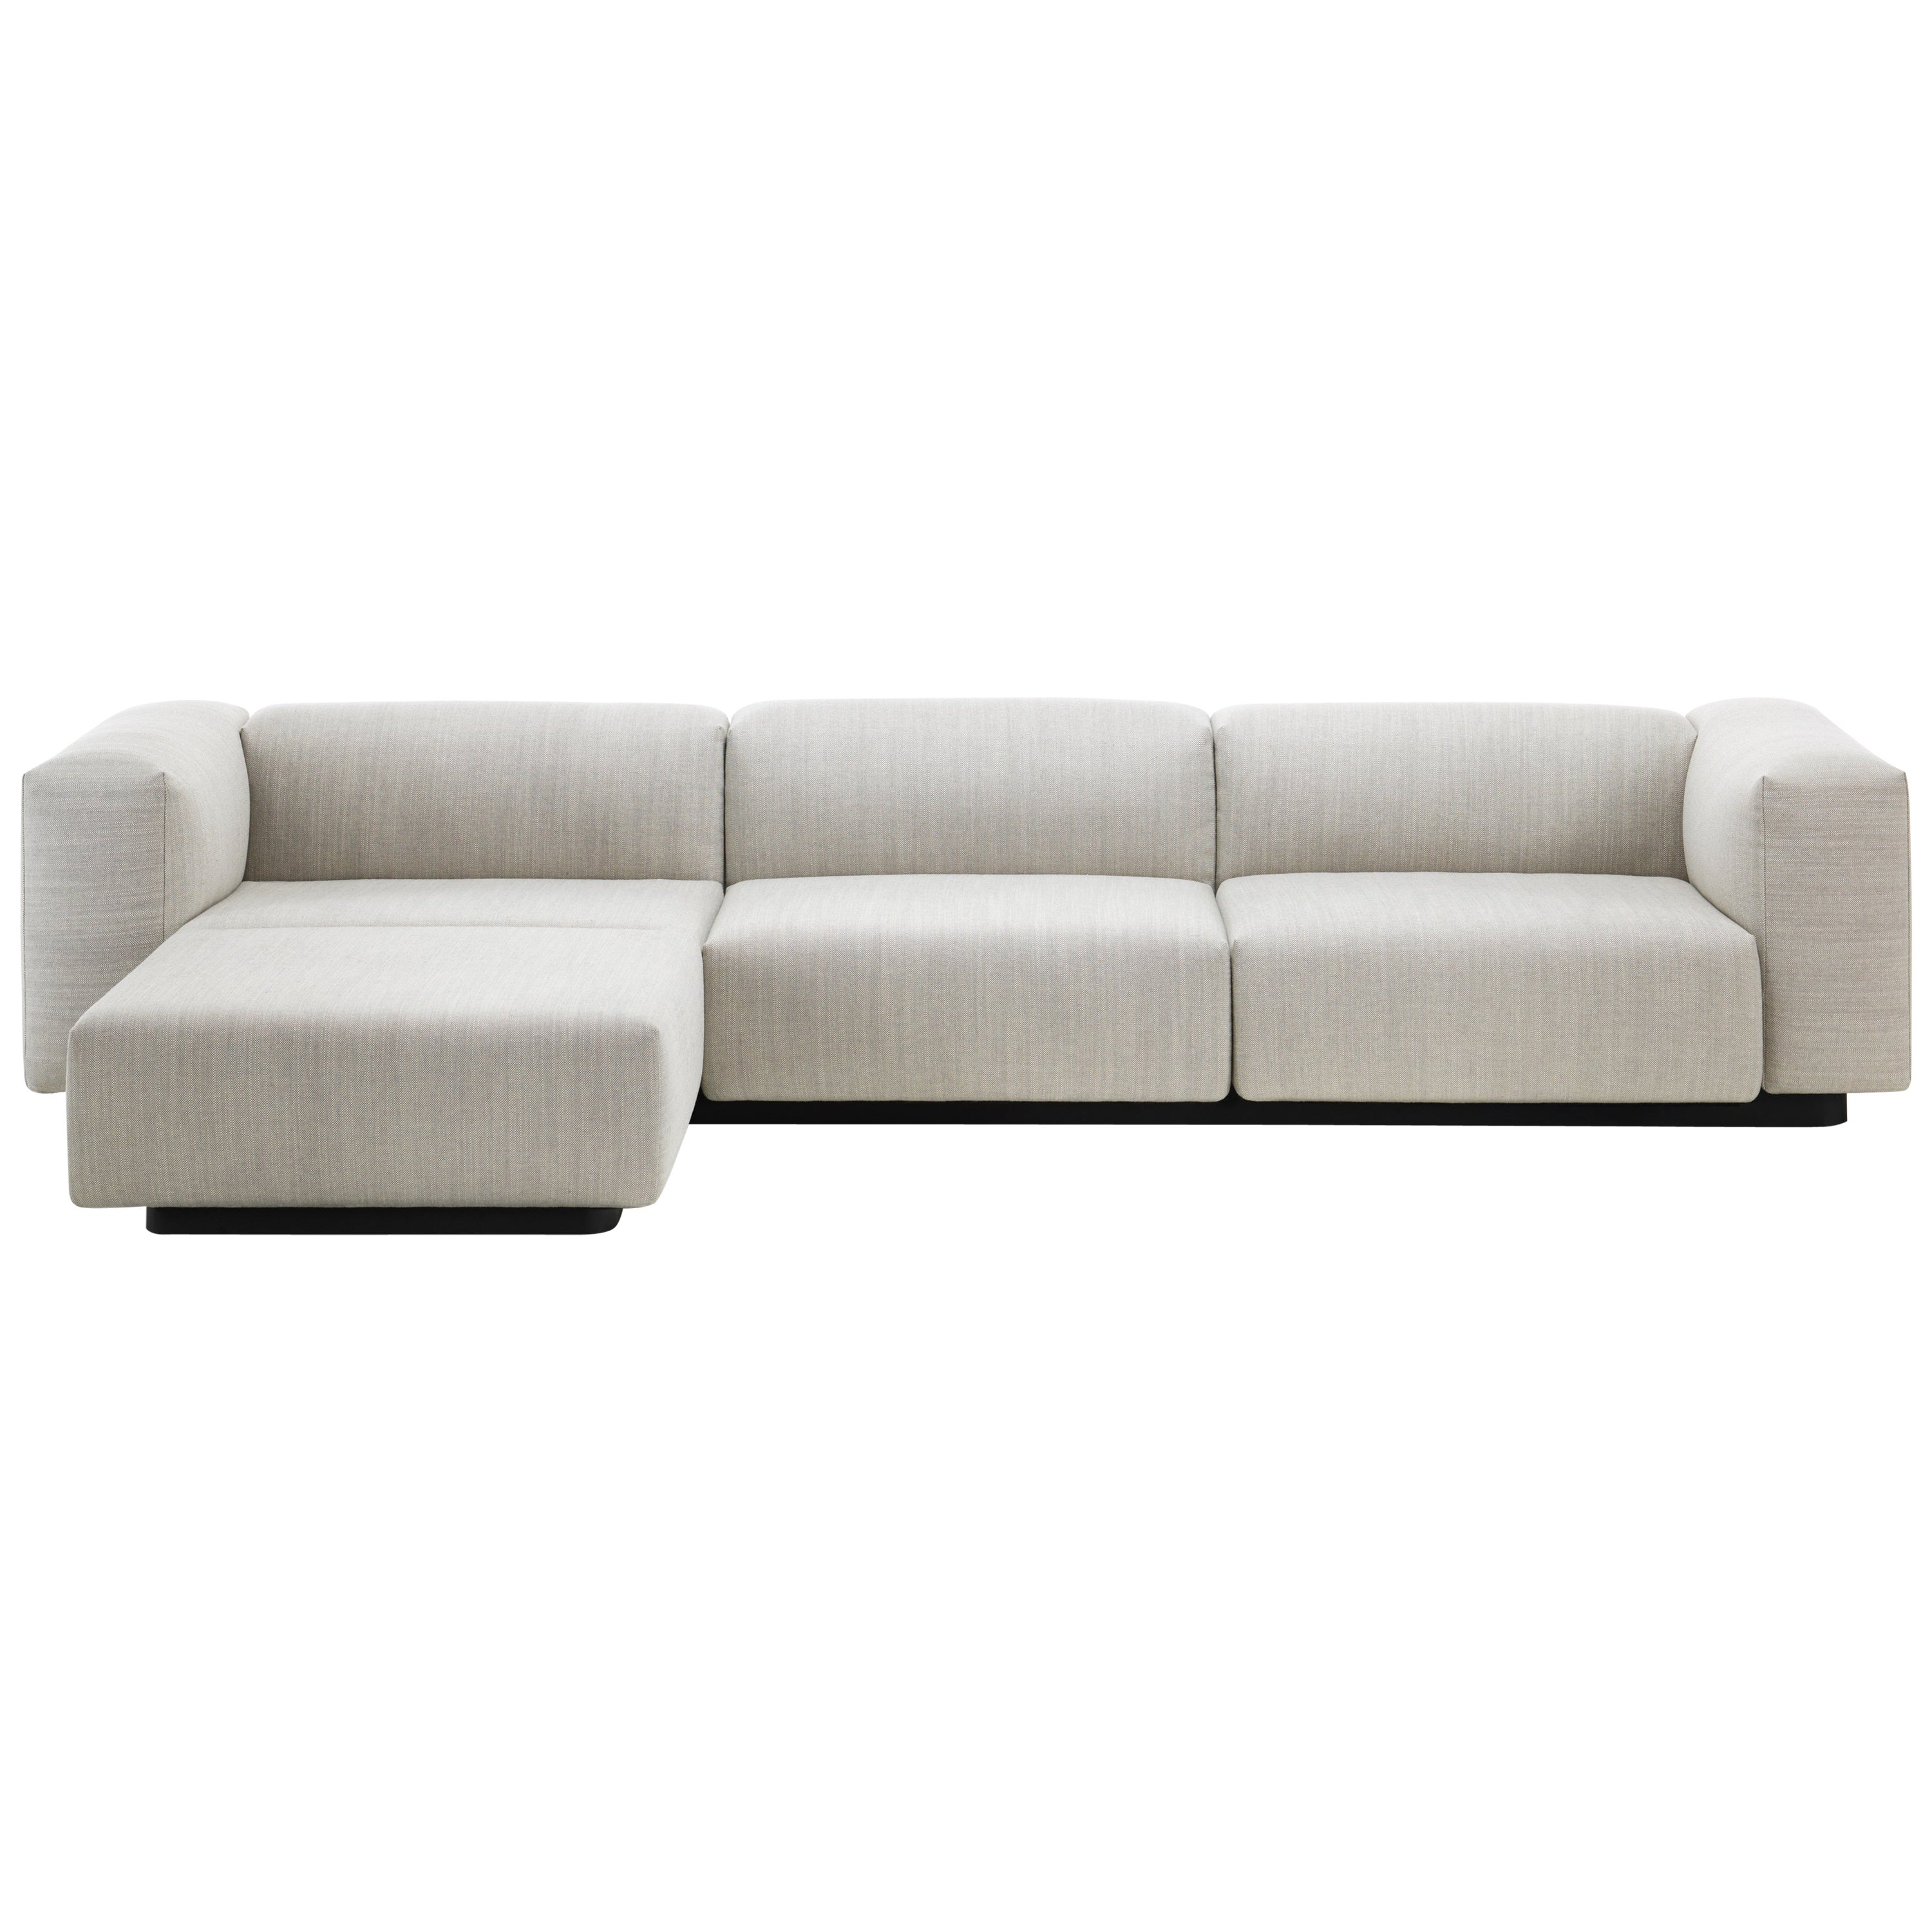 Vitra Soft Modular Sofa With Chaise In Pearl Reed By Jasper Morrison For Sale At 1stdibs